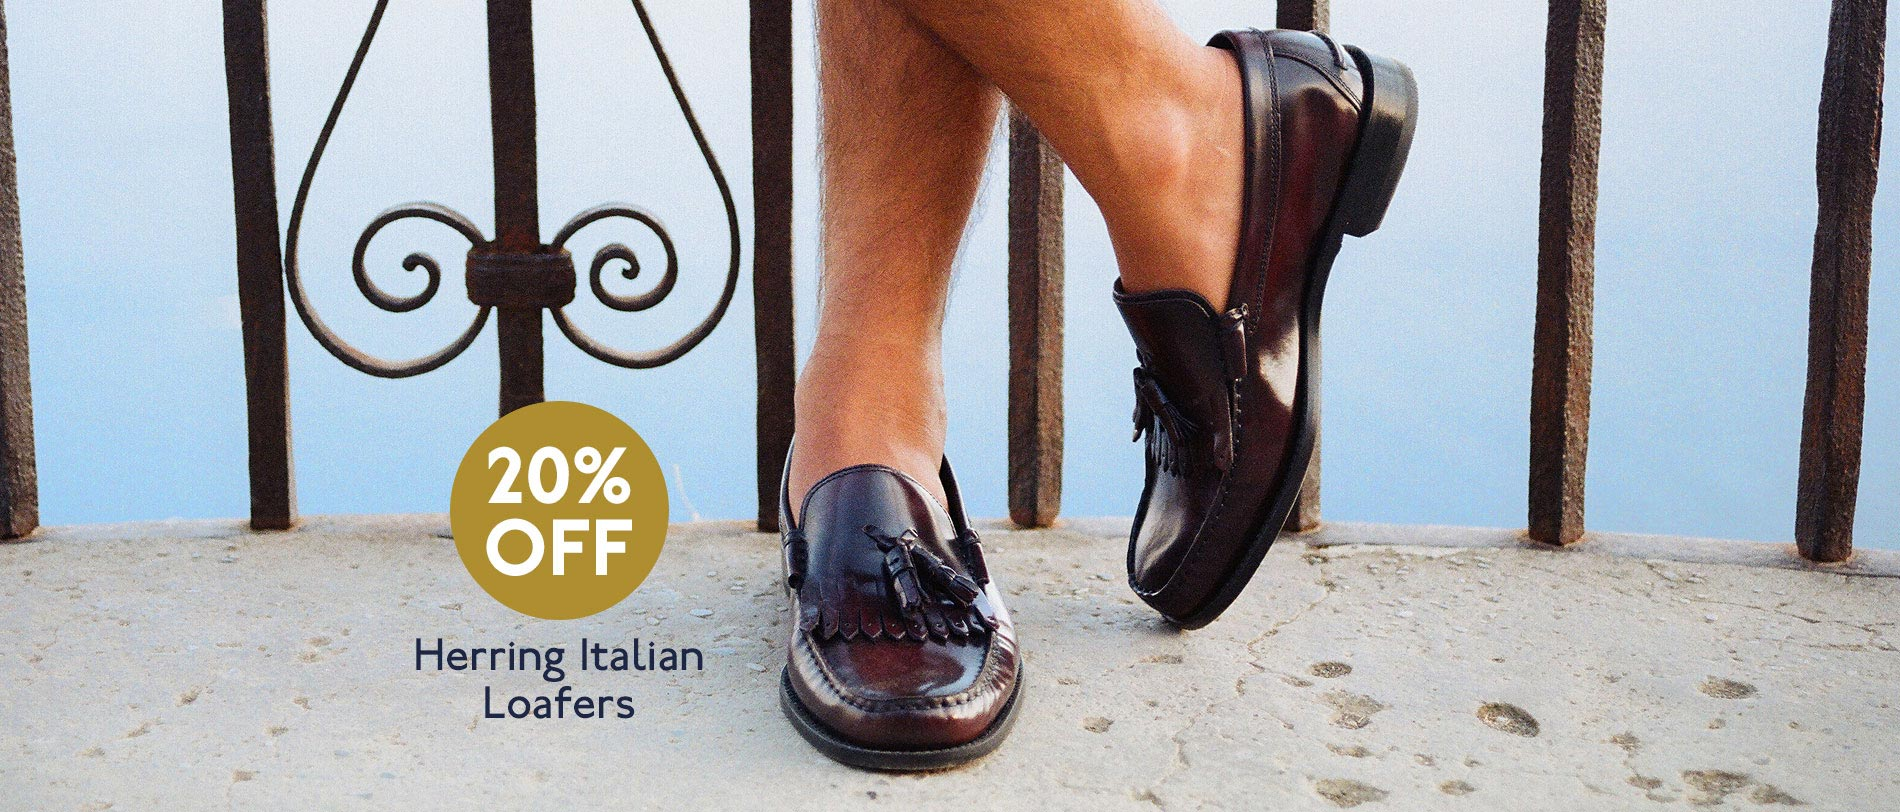 Italian handmade loafers 20% off this June